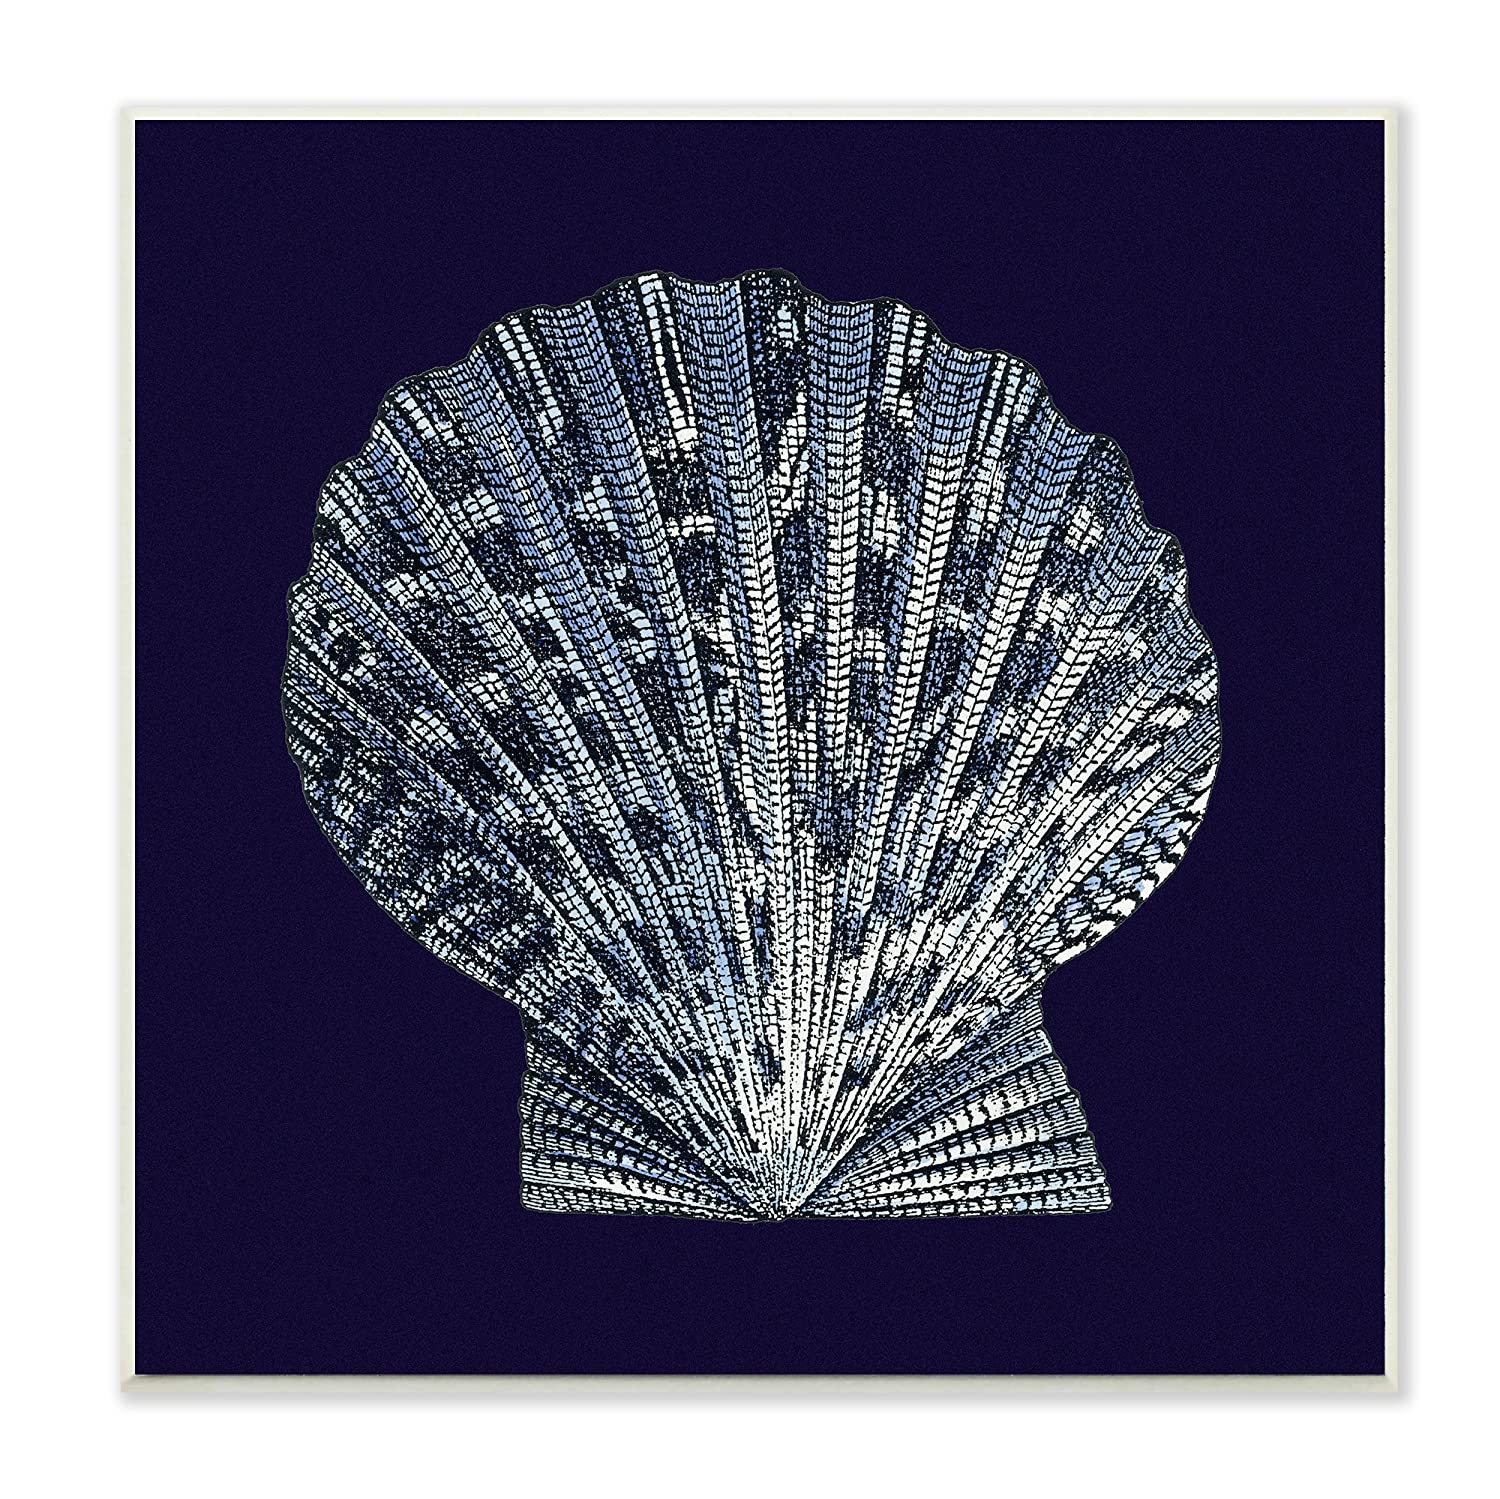 12 X 0 5 X 12 Proudly Made In Usa Stupell Industries Cwp 141 Wd 12x12 Stupell Home Décor Distressed Navy And White Scallop Shell Wall Plaque Art Plaques Home Décor